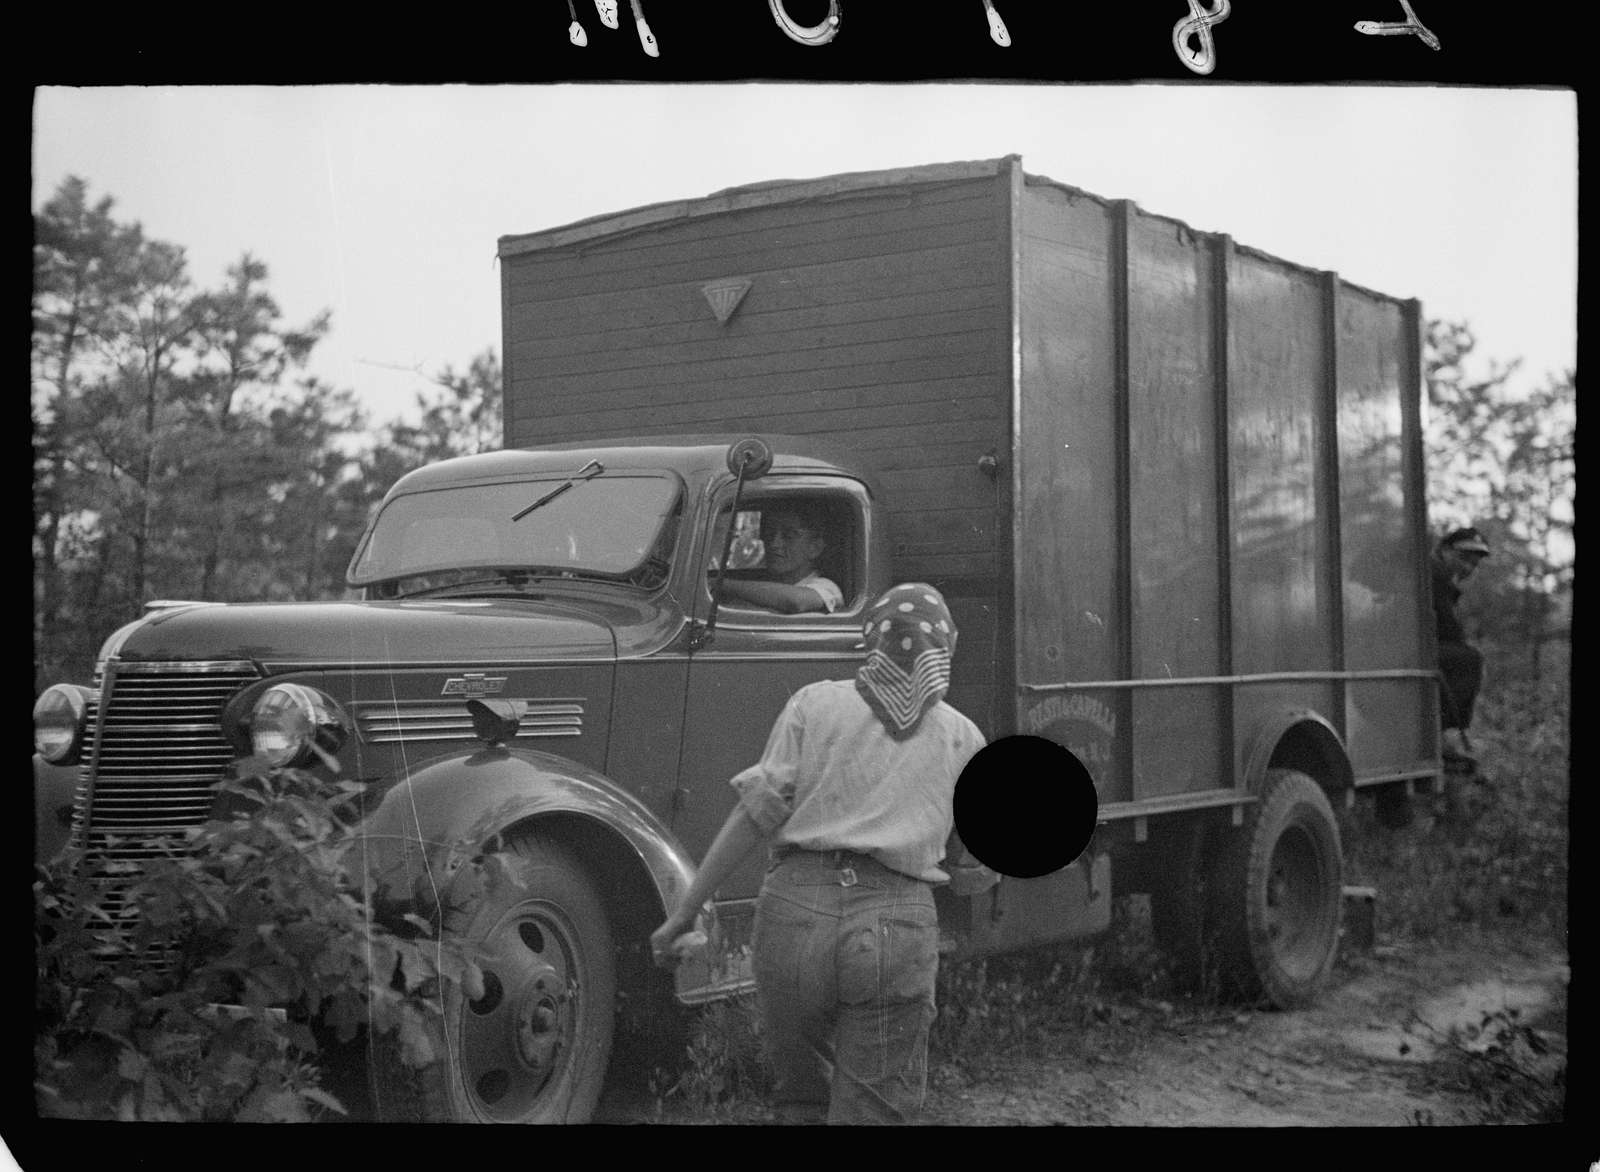 Untitled photo, possibly related to: Cranberry pickers from Philadelphia on labor contractor's truck, Burlington County, New Jersey